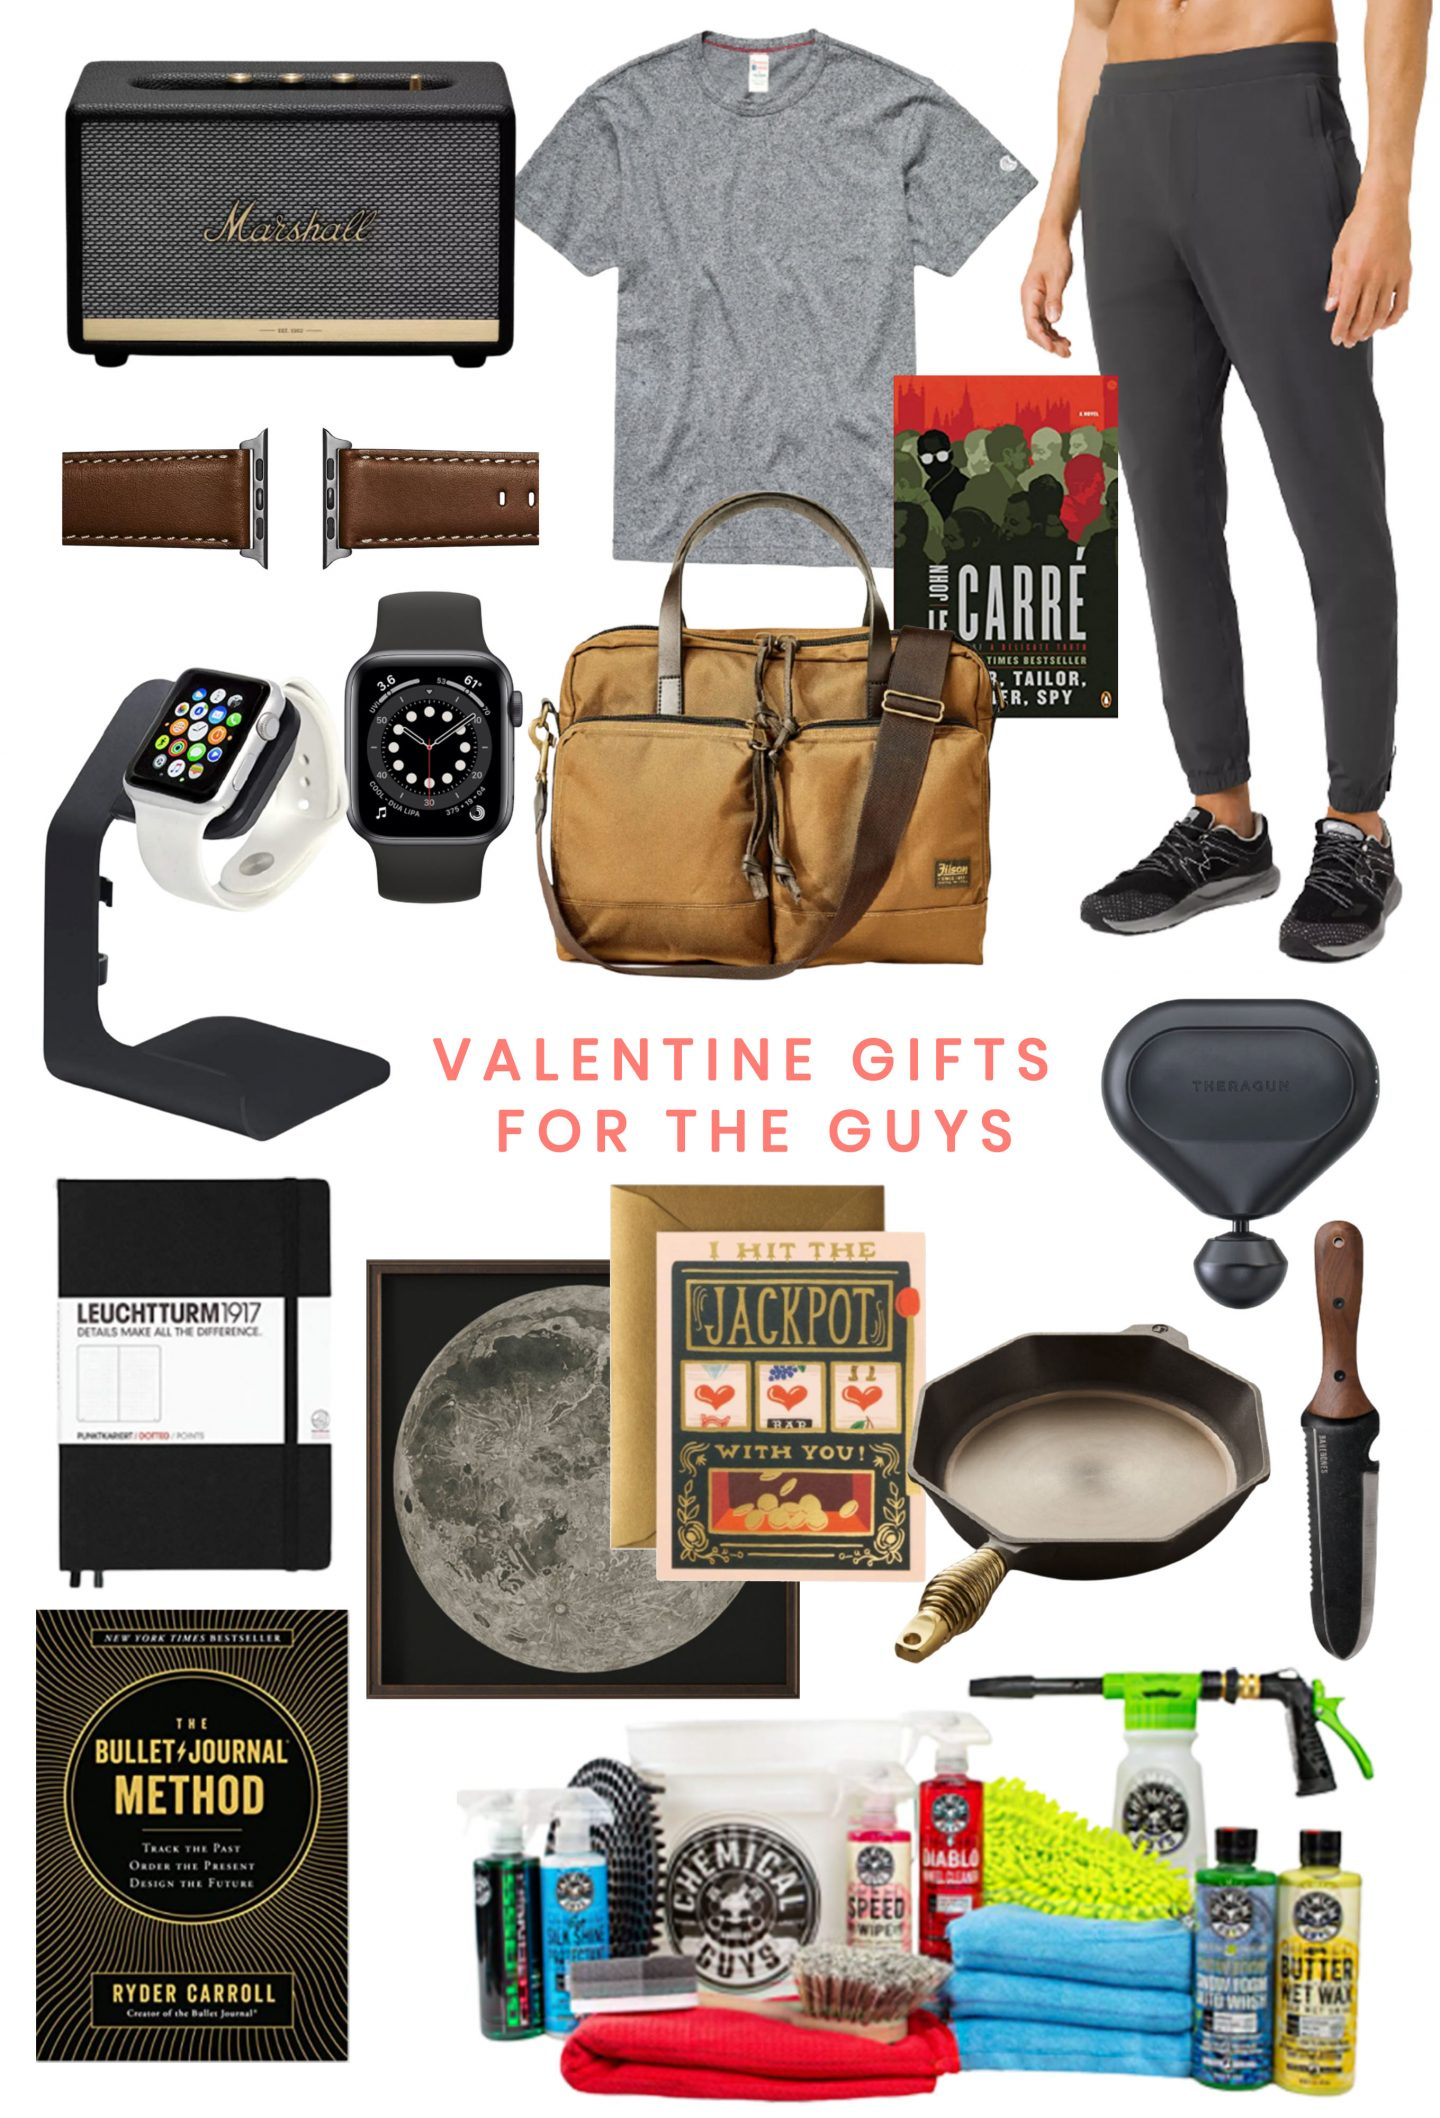 Valentine Gifts For The Guys